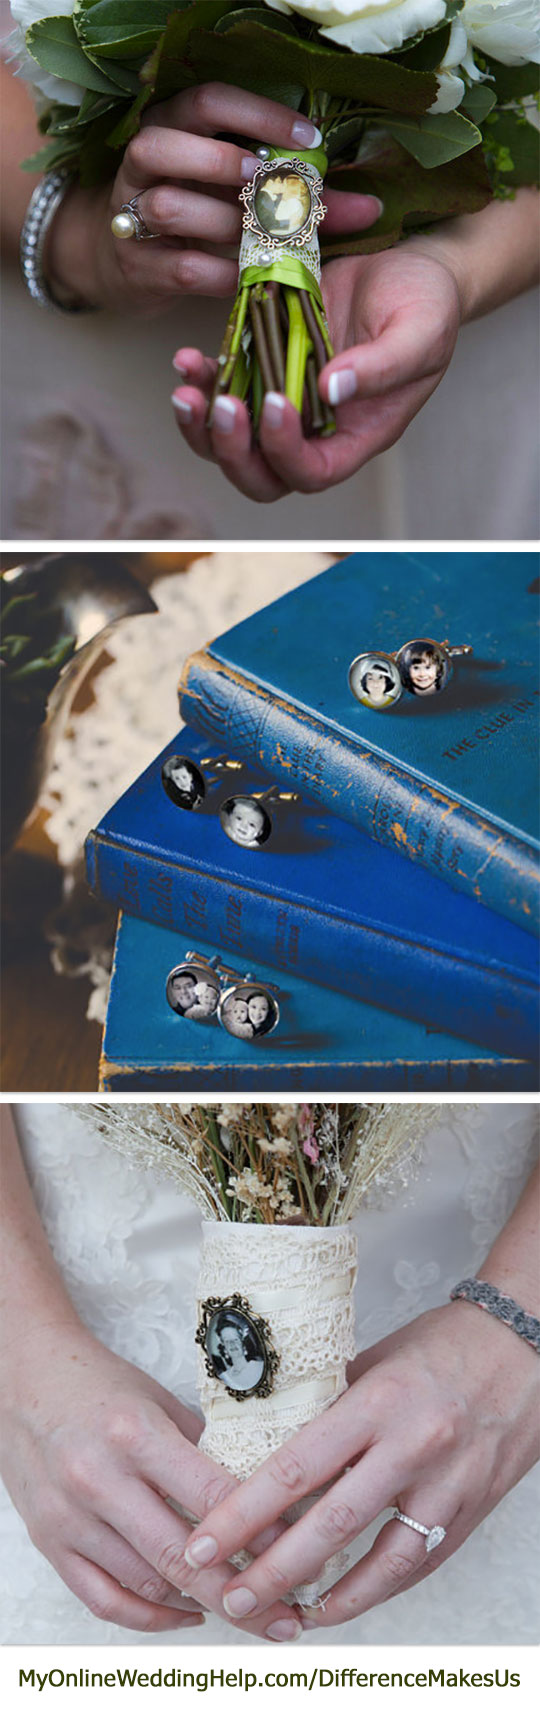 The photo cufflinks are a great idea for grooms or groomsman gift. The vintage look brooches with photos make nice bouquet handle decorations, too. #DifferenceMakesUs